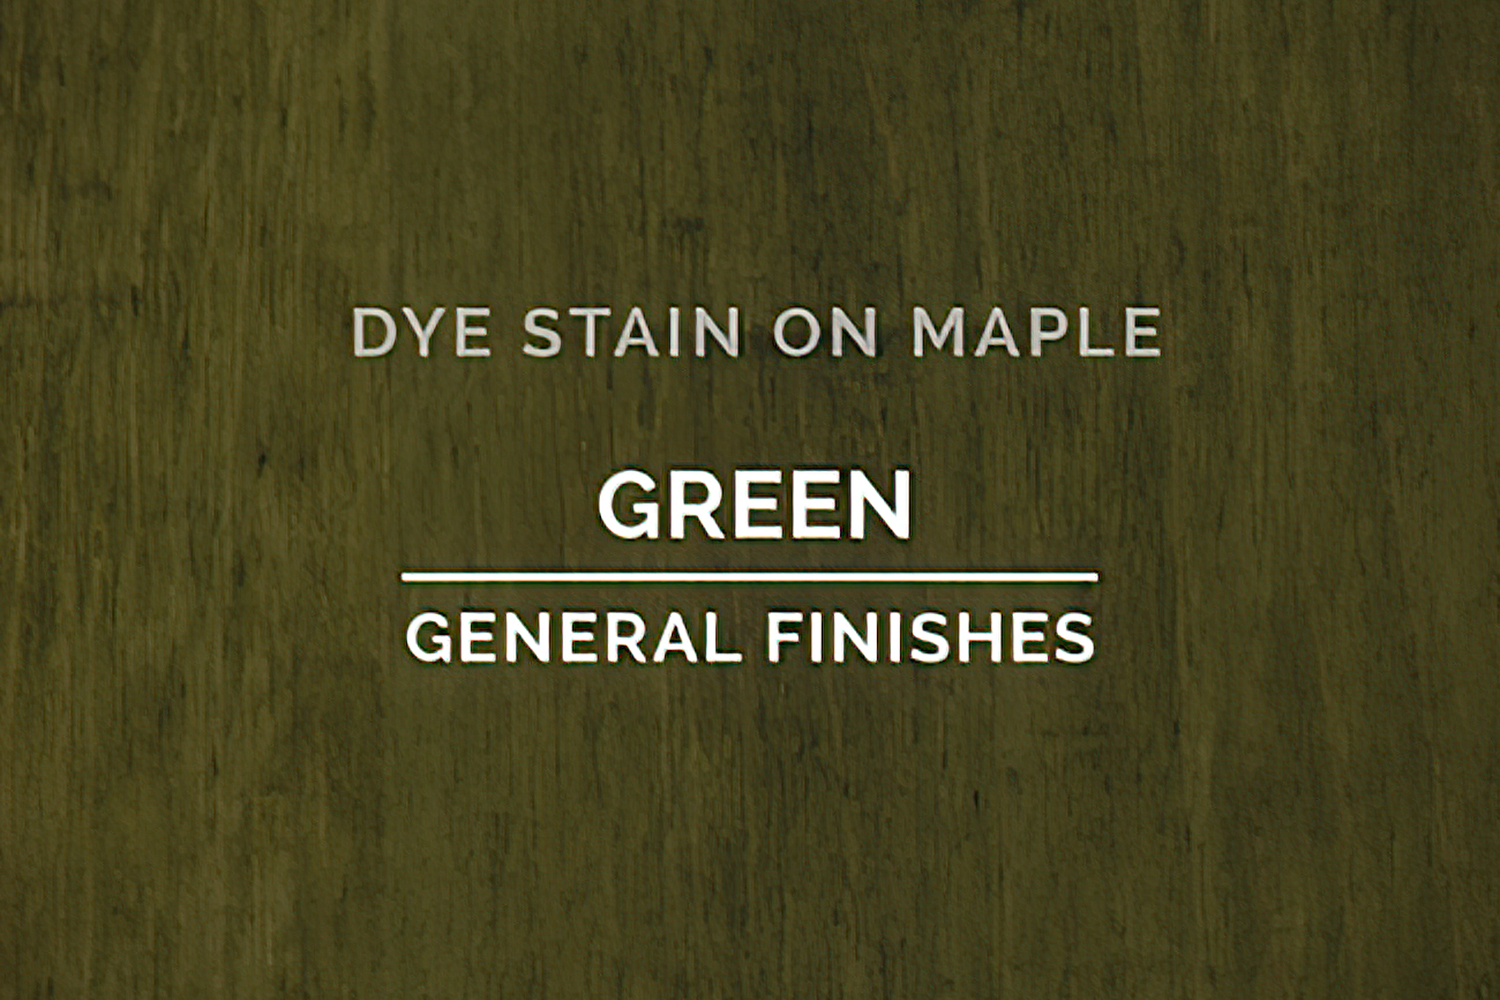 General Finishes Green Dye Pint